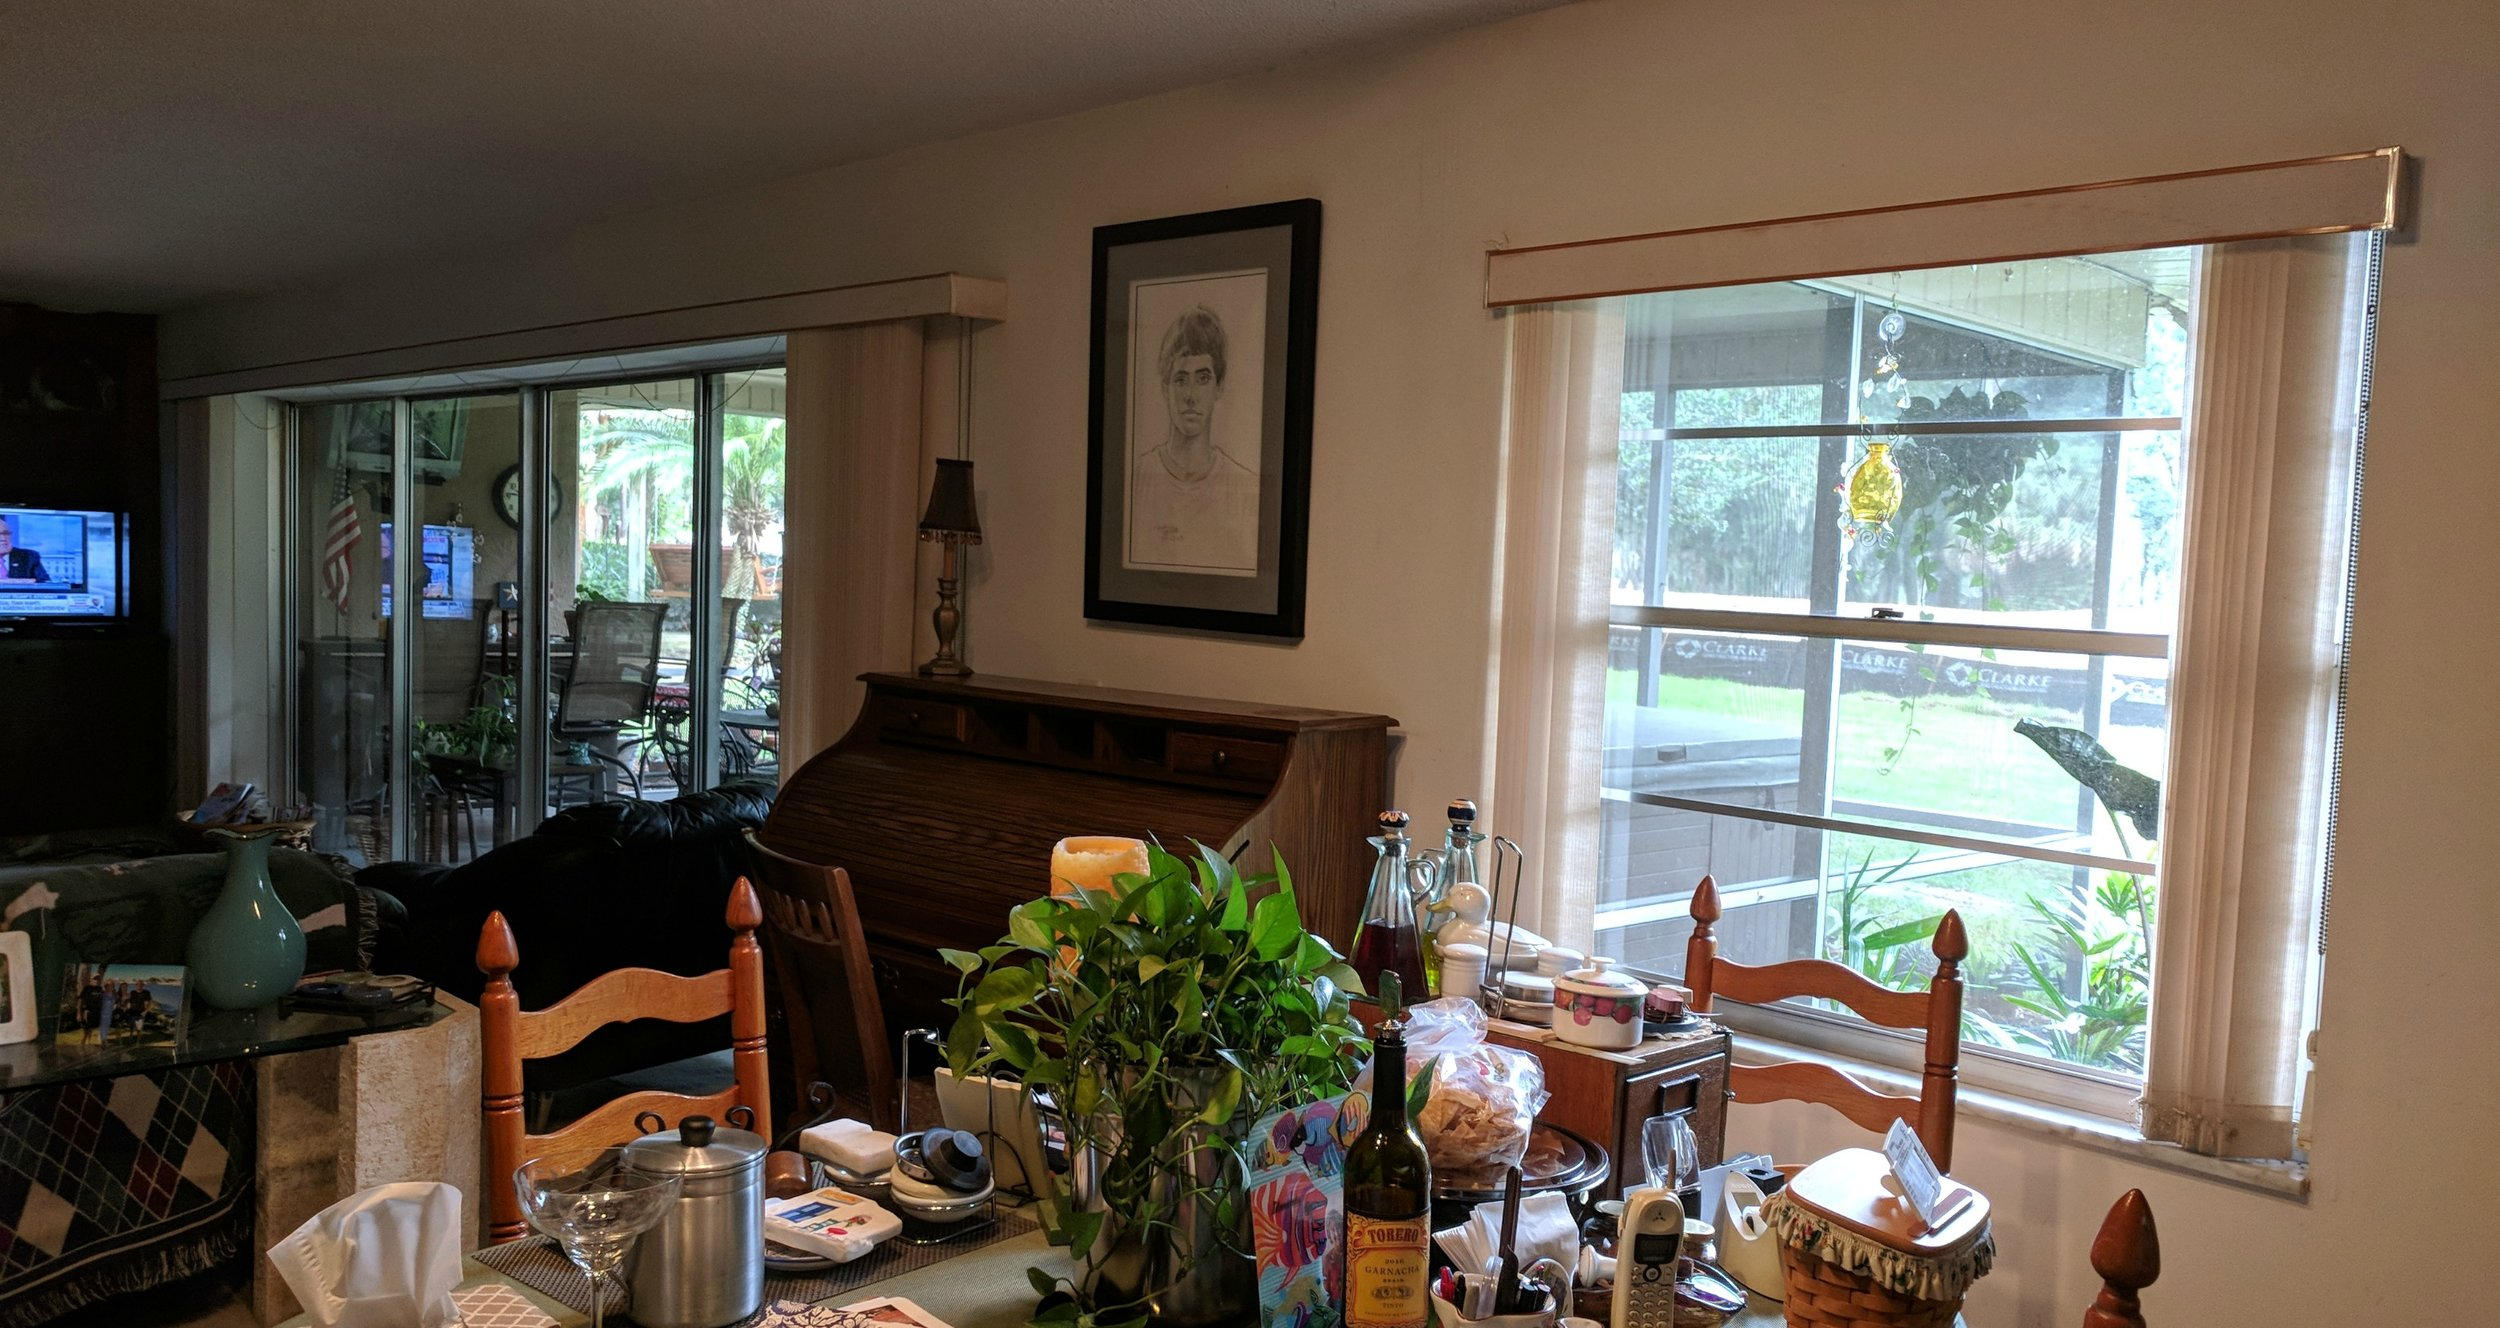 This is the other side of the living room. That sliding door is bigger than many garage doors. The windows are just amazing. And, yes, I had the tv on the whole time because they have cable! We don't have cable. I binged on HGTV and bad movies. Still having withdrawals.